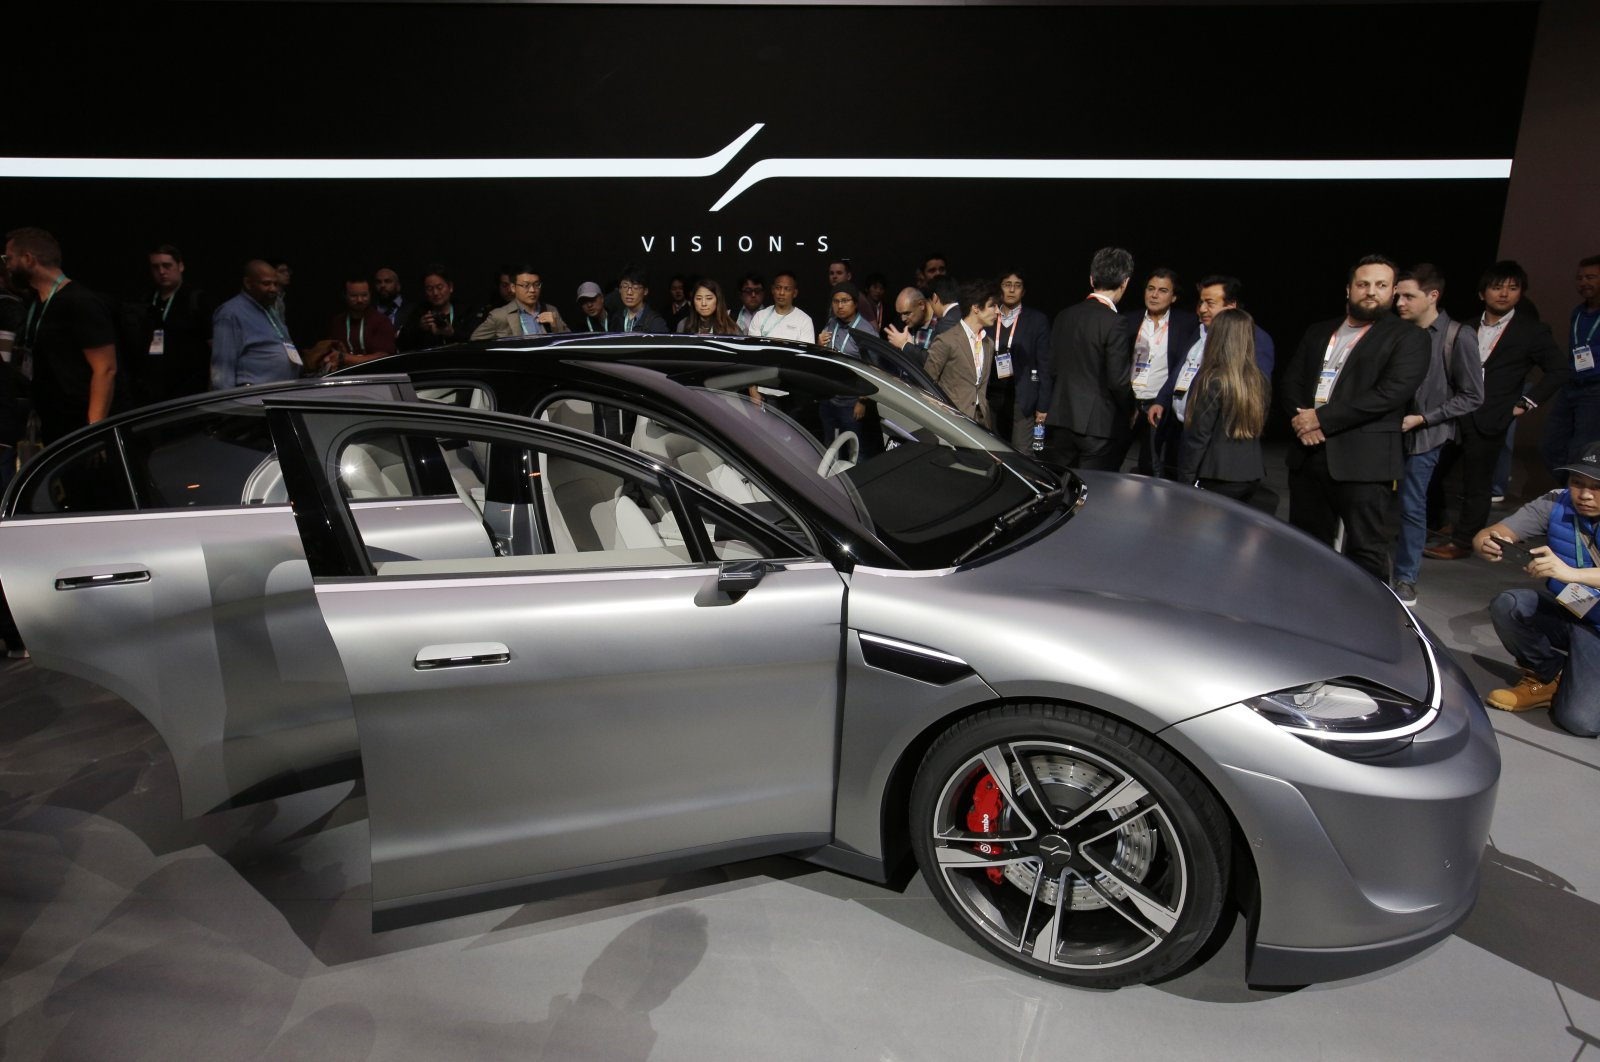 People stand around the Sony Vision-S electric concept car at the Sony booth during the CES tech show, Las Vegas, U.S., Jan. 7, 2020. (AP Photo)